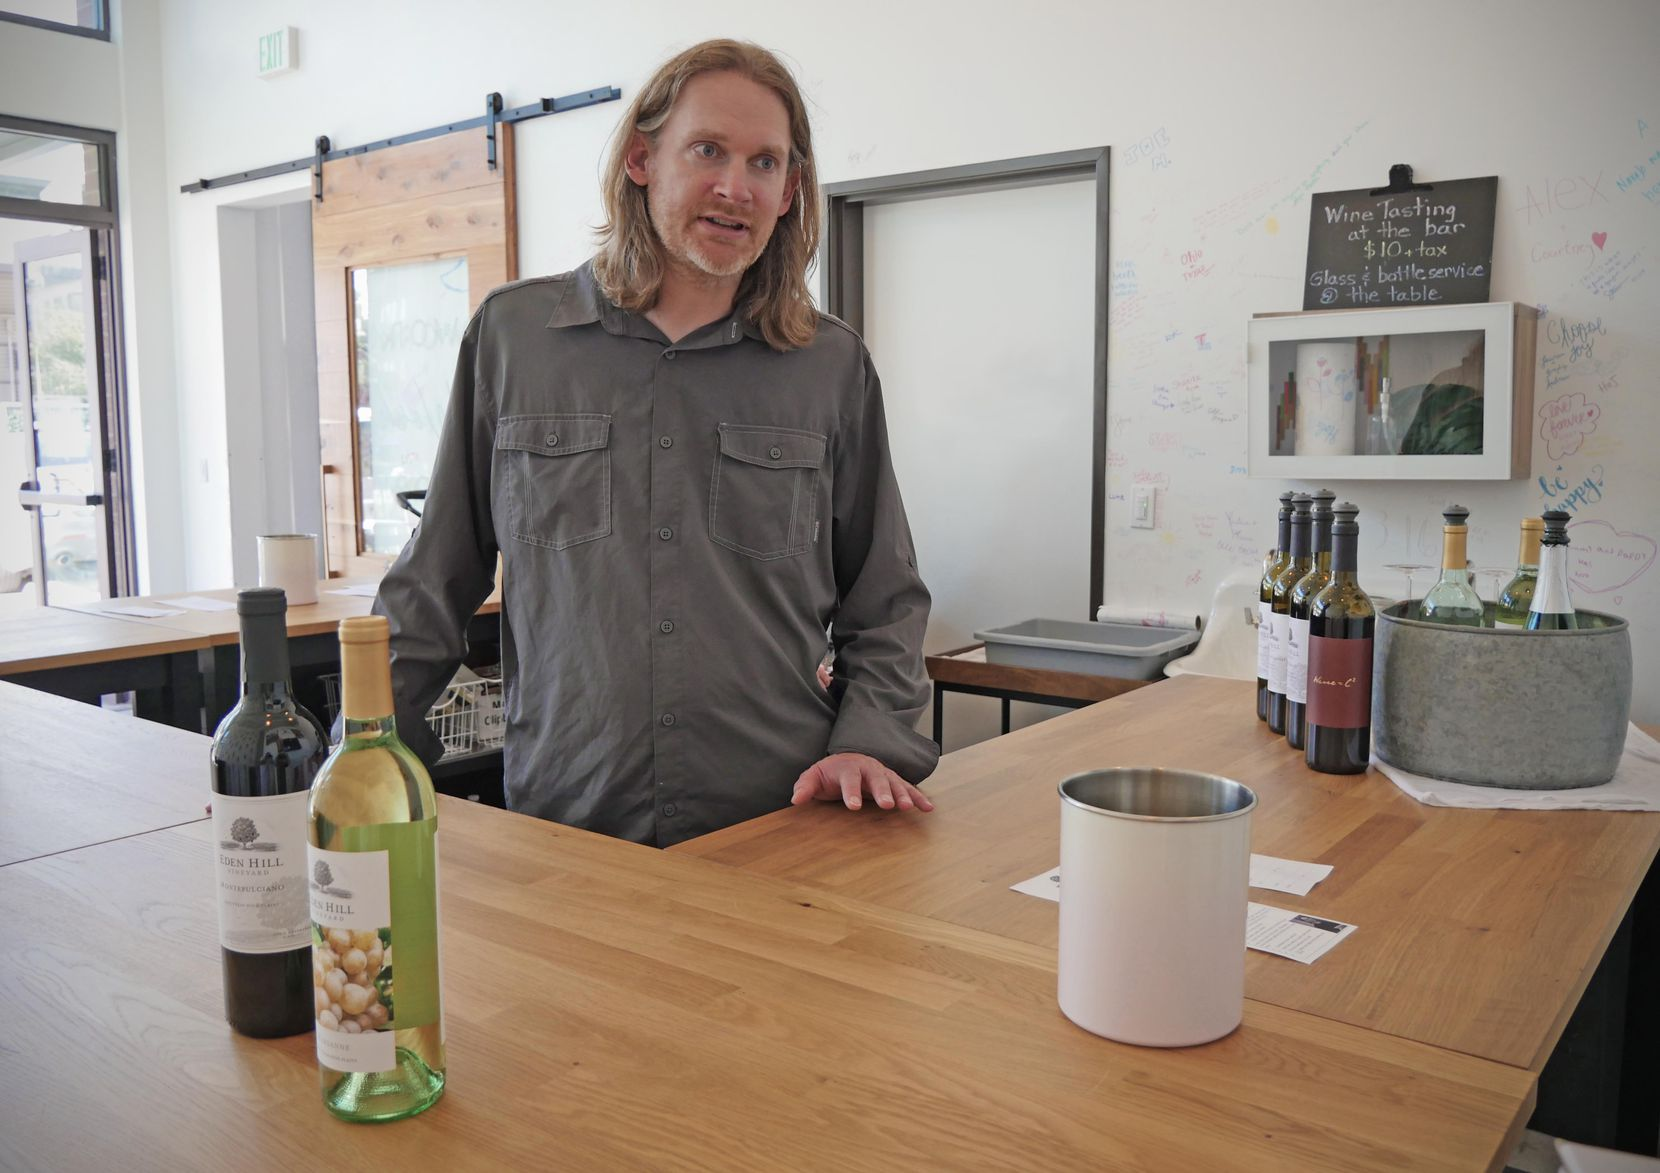 Winemaker Chris Hornbaker at the Eden Hill Winery at the Lofts, a new brick-and-mortar tasting room at the Dallas Farmers Market. Eden Hill Vineyard and Winery is located in Celina.